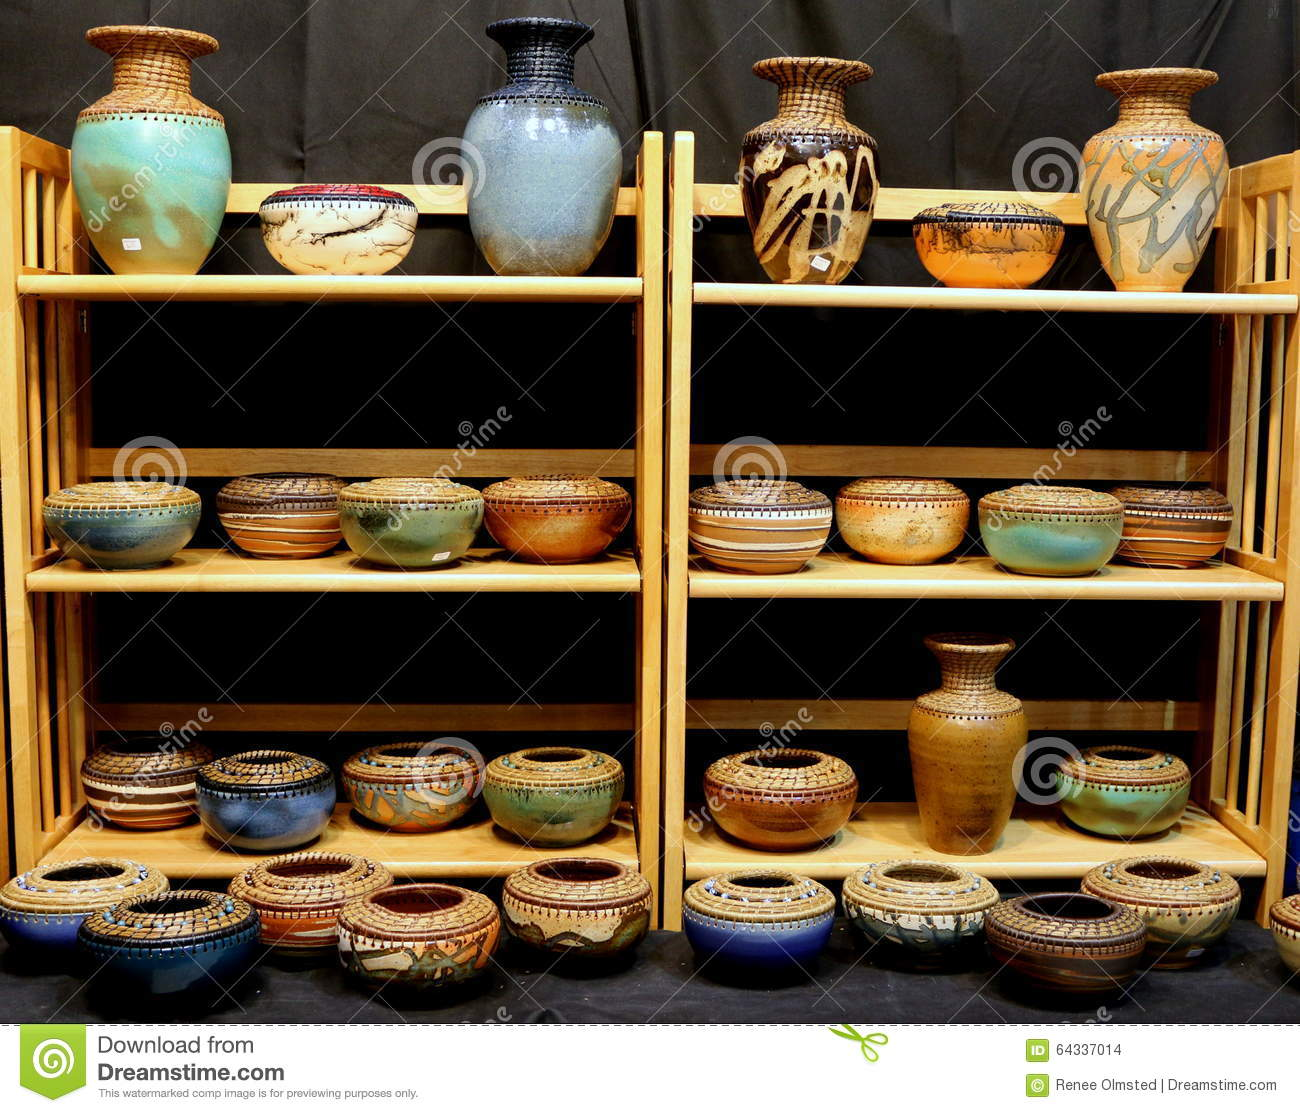 How To Display Bowls Display Of Earthenware Bowls And Vases Stock Photo Image